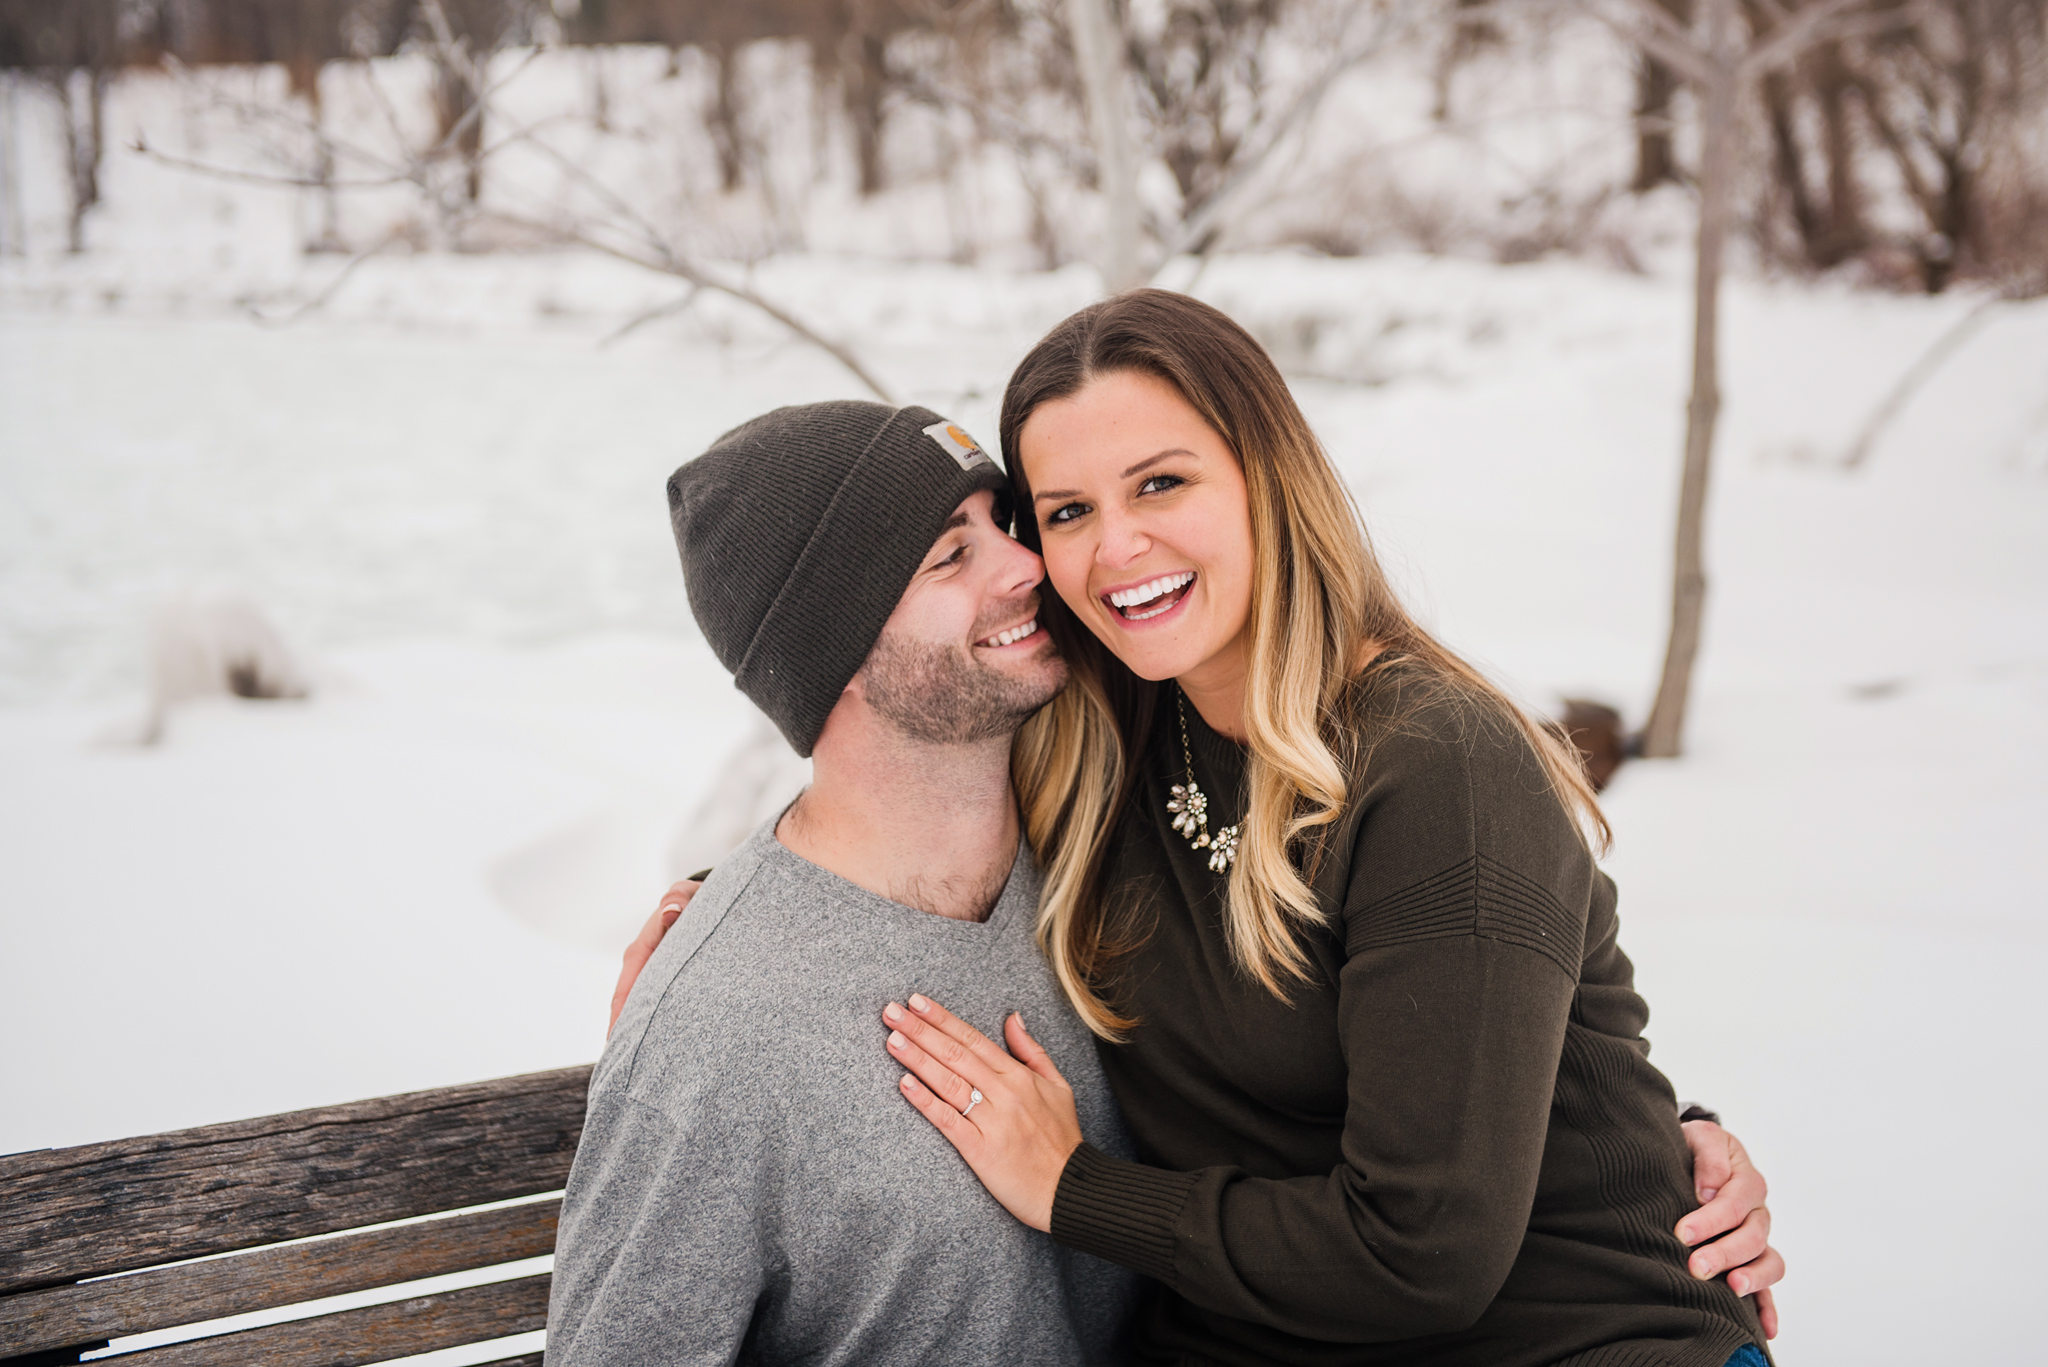 Webster_Park_Engagement_Session_Rochester_NY_photographer_DSC_6488.jpg